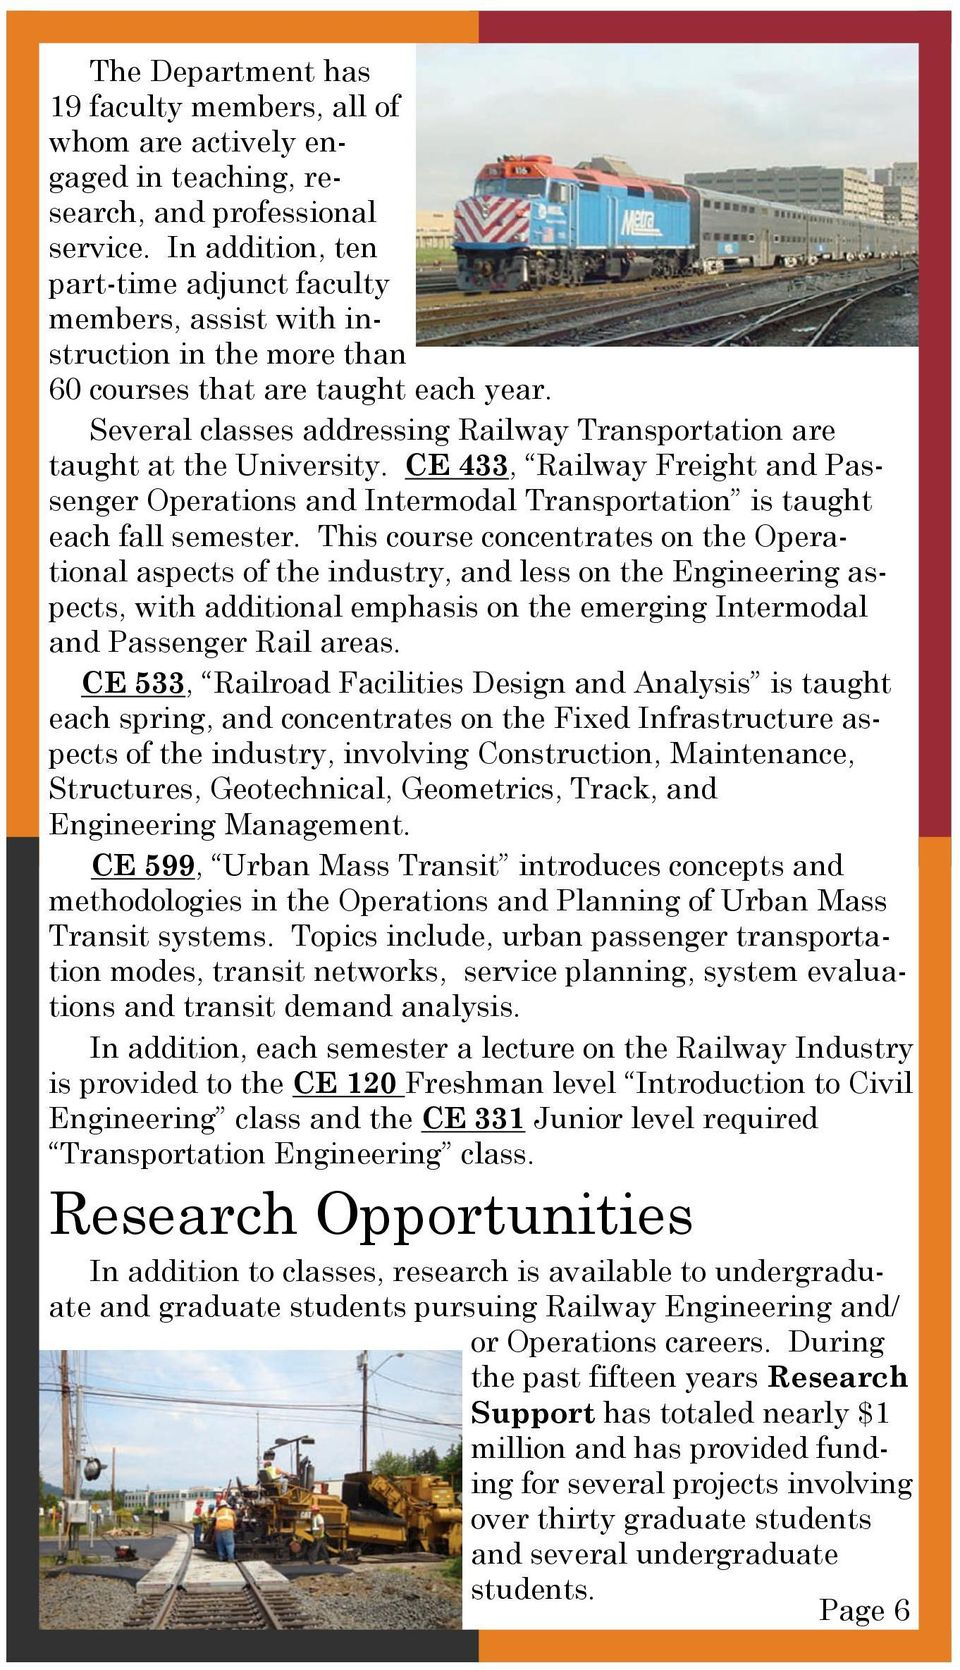 Several classes addressing Railway Transportation are taught at the University. CE 433, Railway Freight and Passenger Operations and Intermodal Transportation is taught each fall semester.